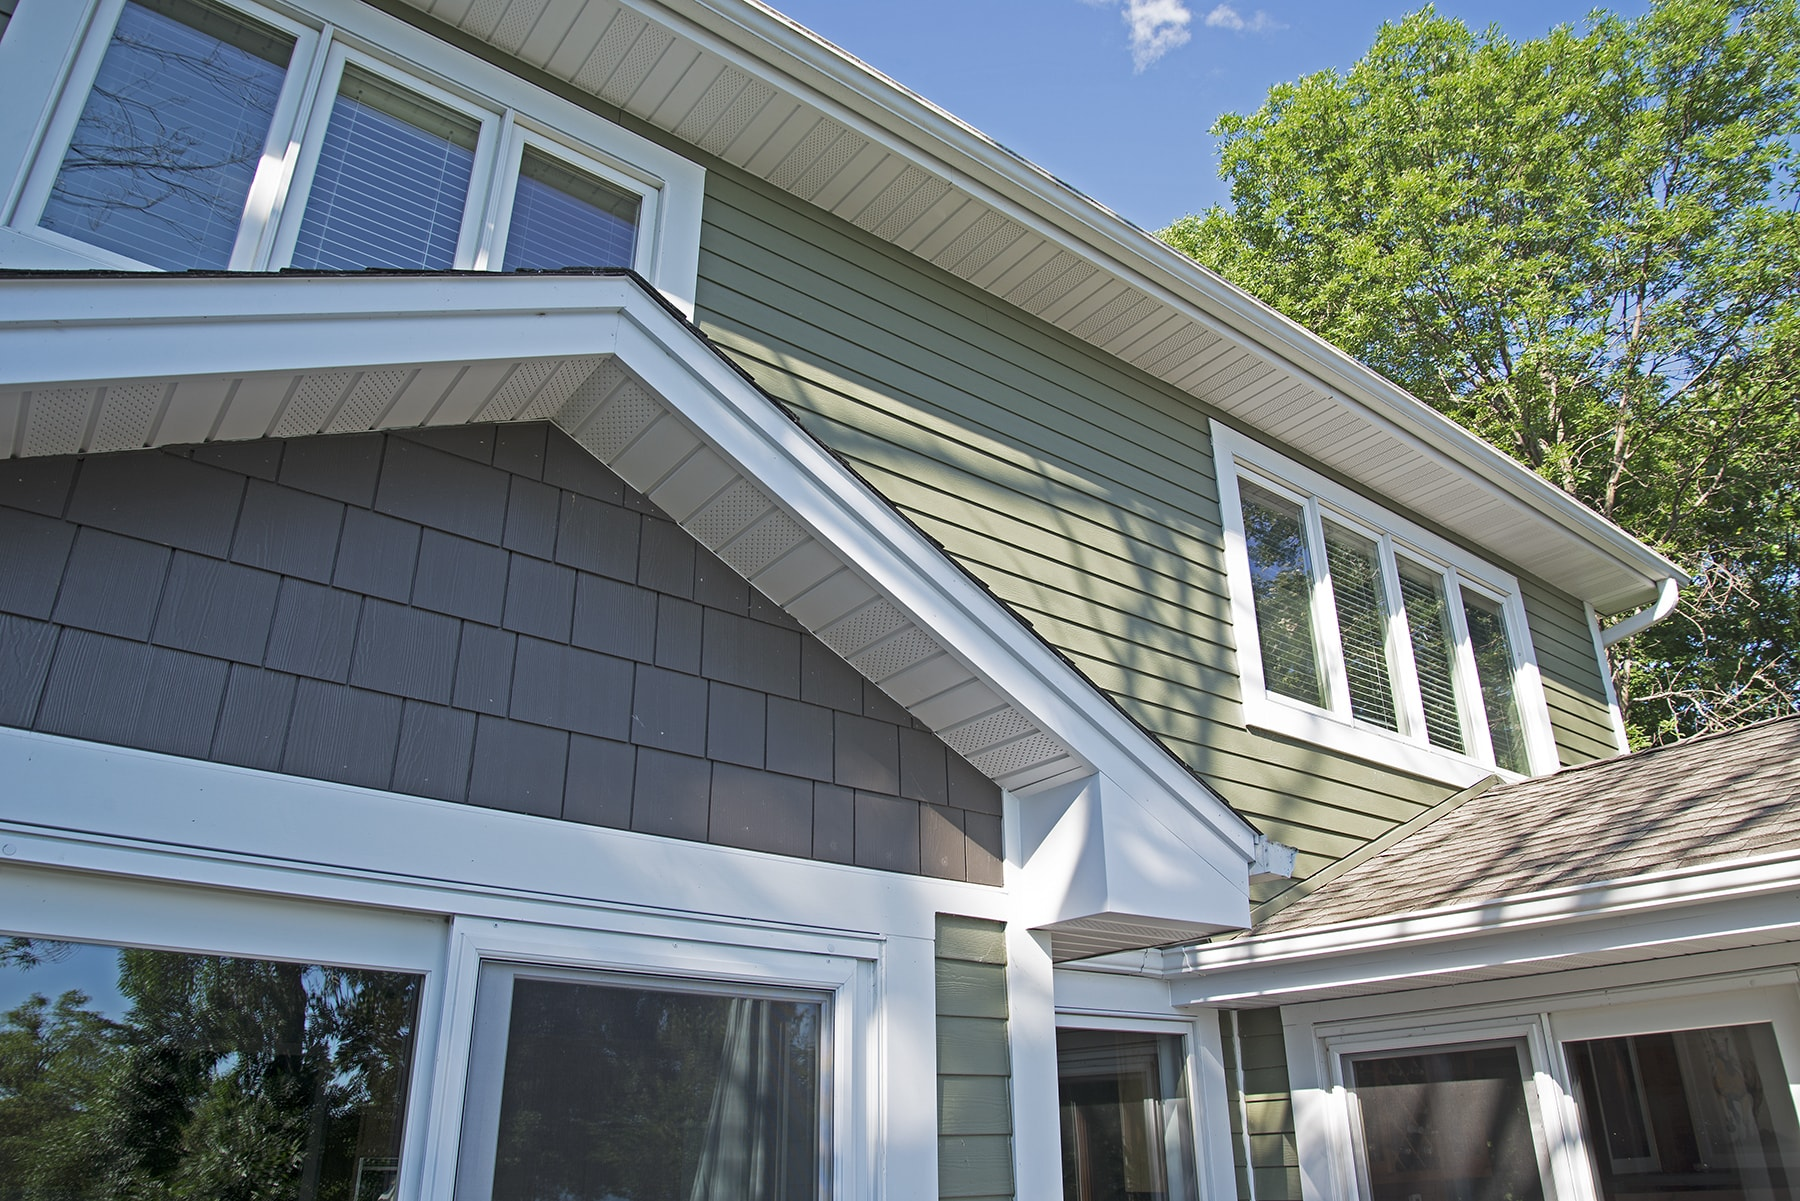 Exterior Remodeling Ideas Roofing Siding Windows Project Photos